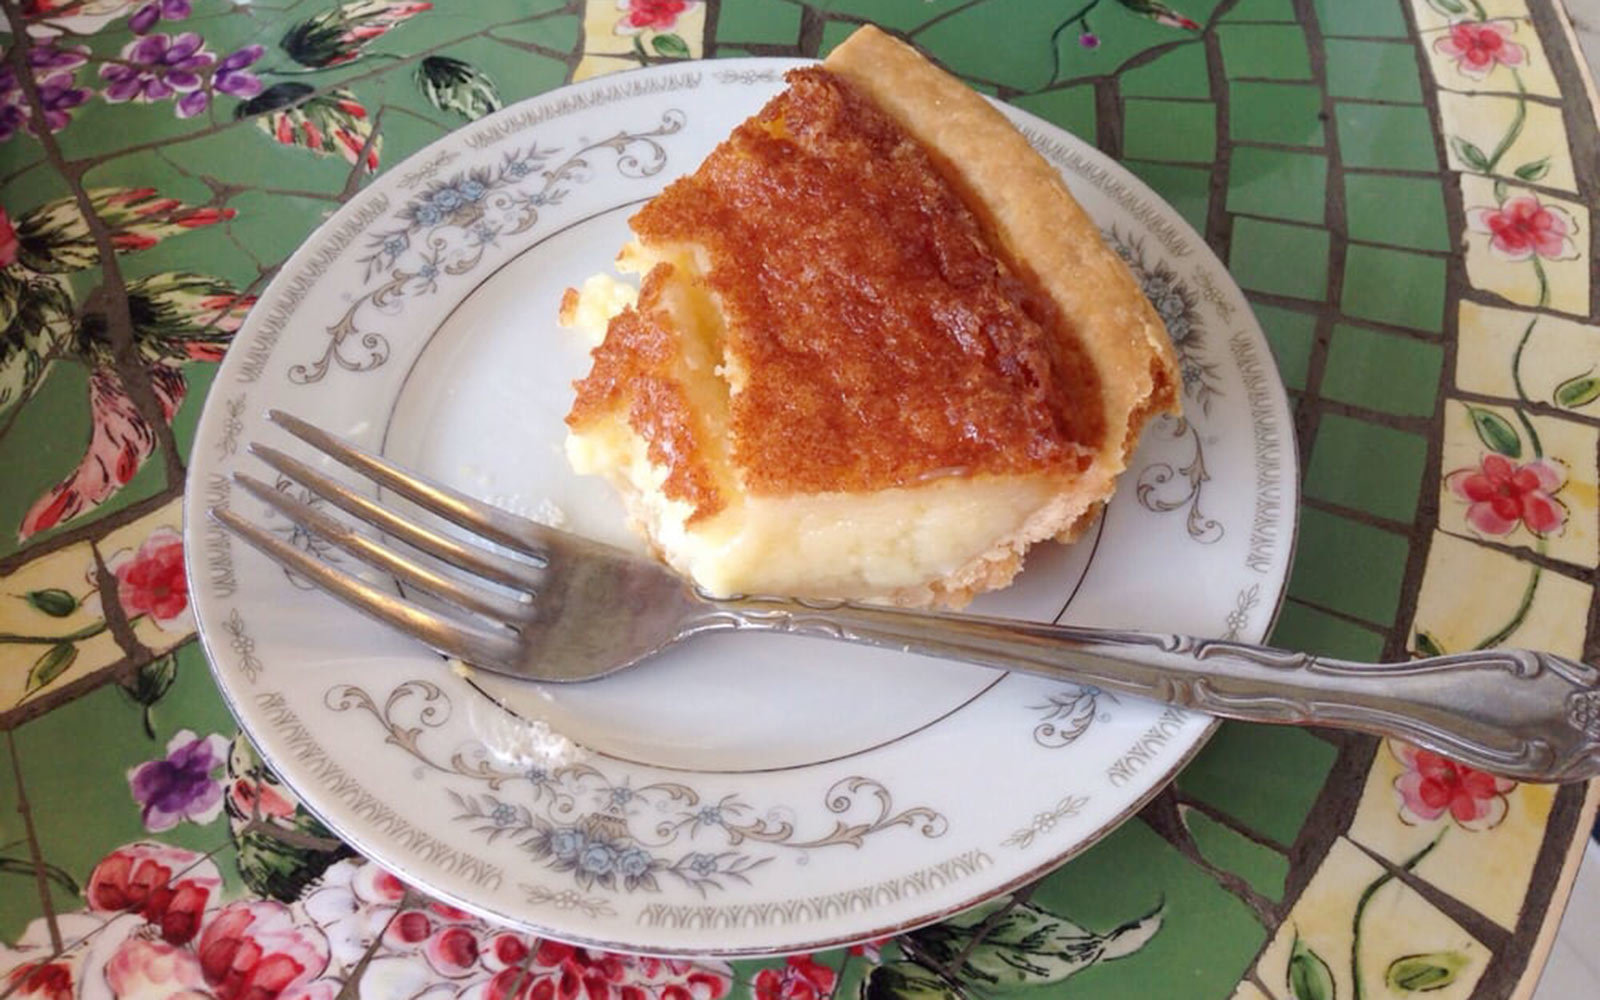 Best Places for Pie